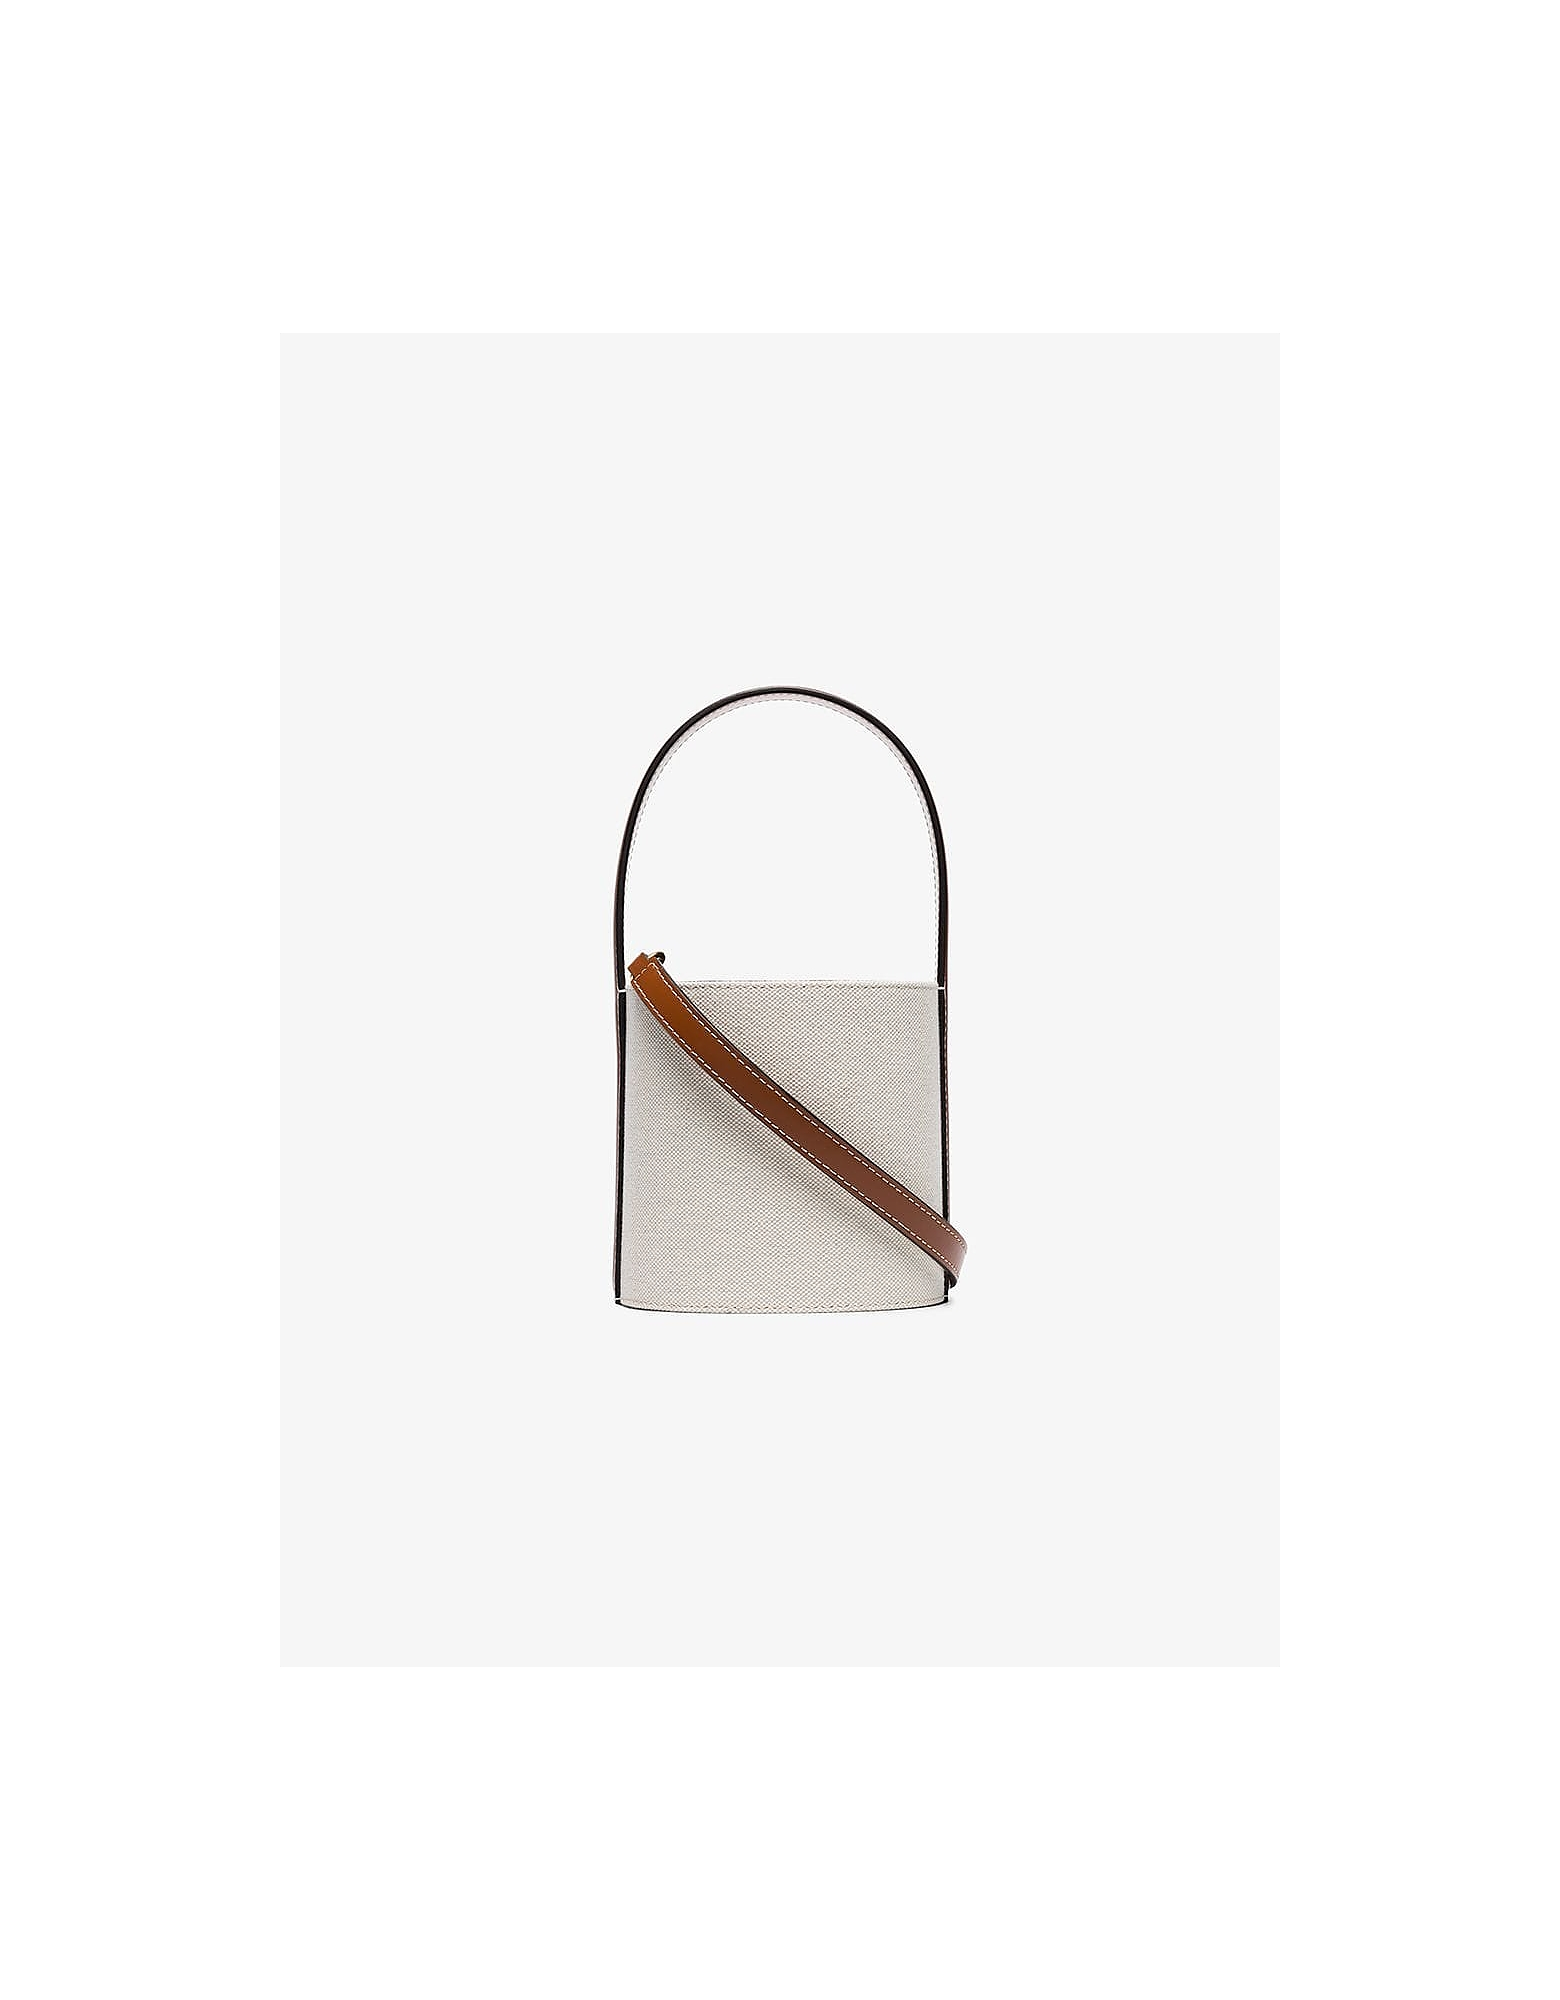 Staud Bags BROWN AND WHITE MINI BISSET BUCKET BAG